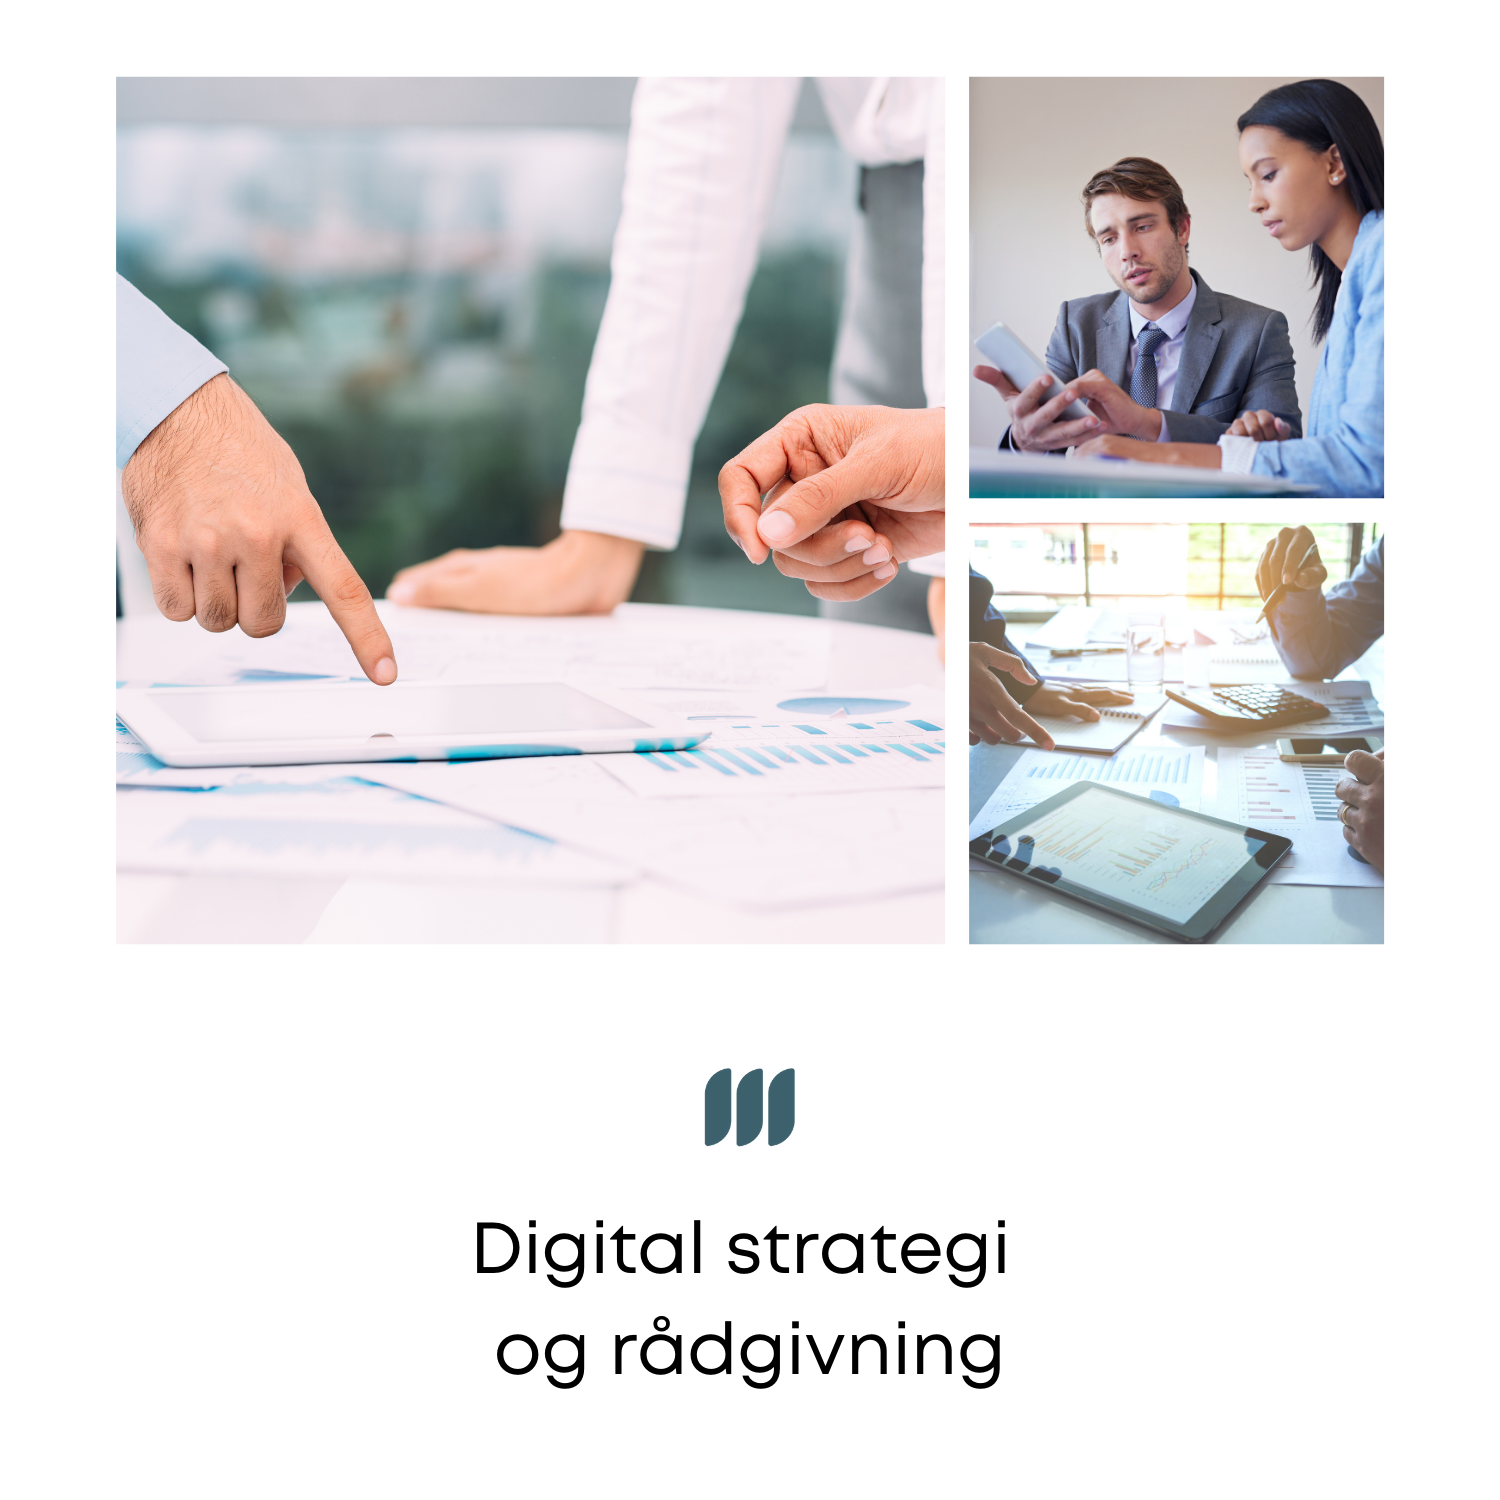 Digital strategi og rådgivning